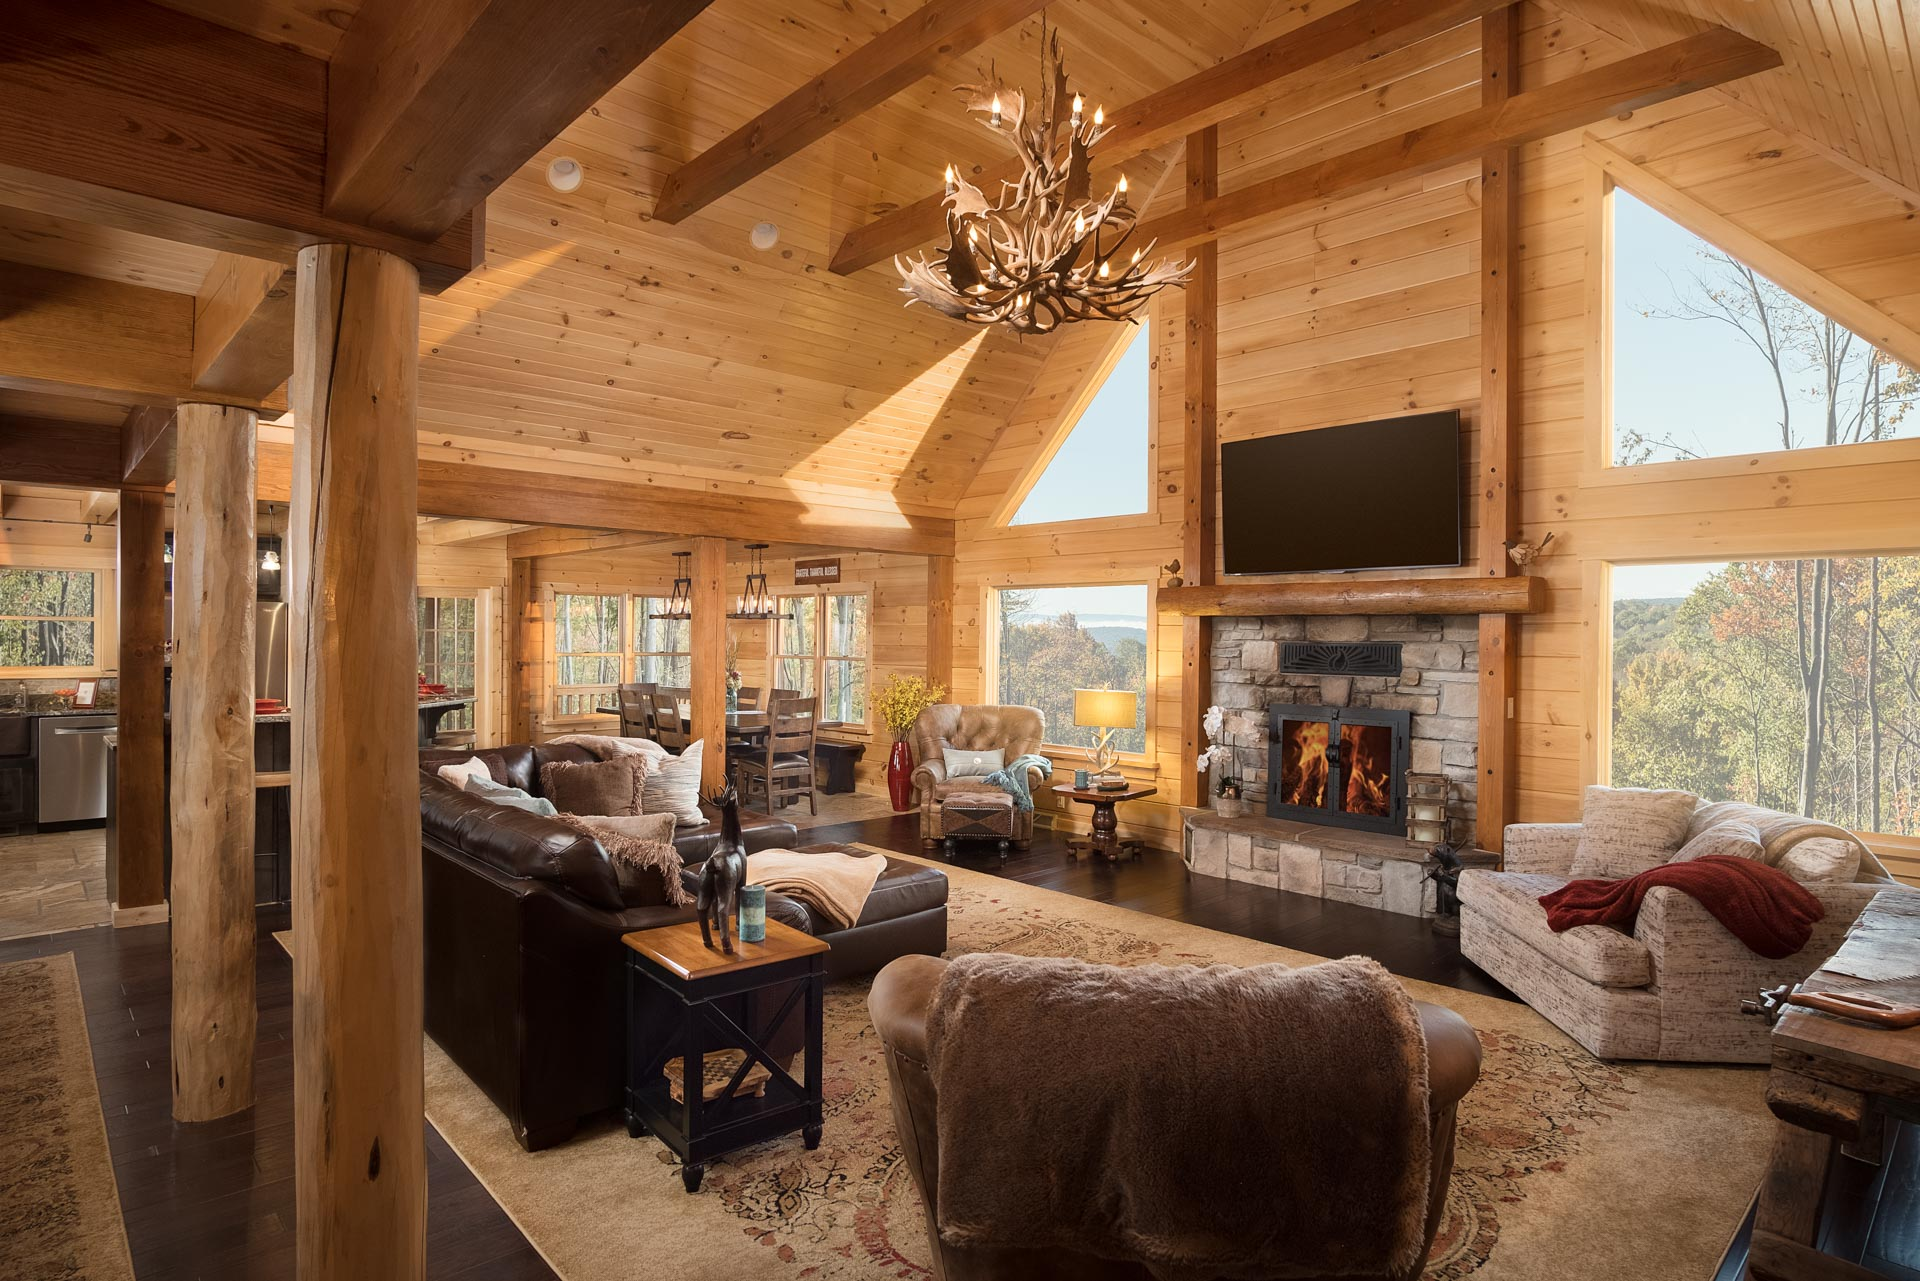 remarkable log cabin home living room | Commercial Photographer | Allen Mowery Photography ...